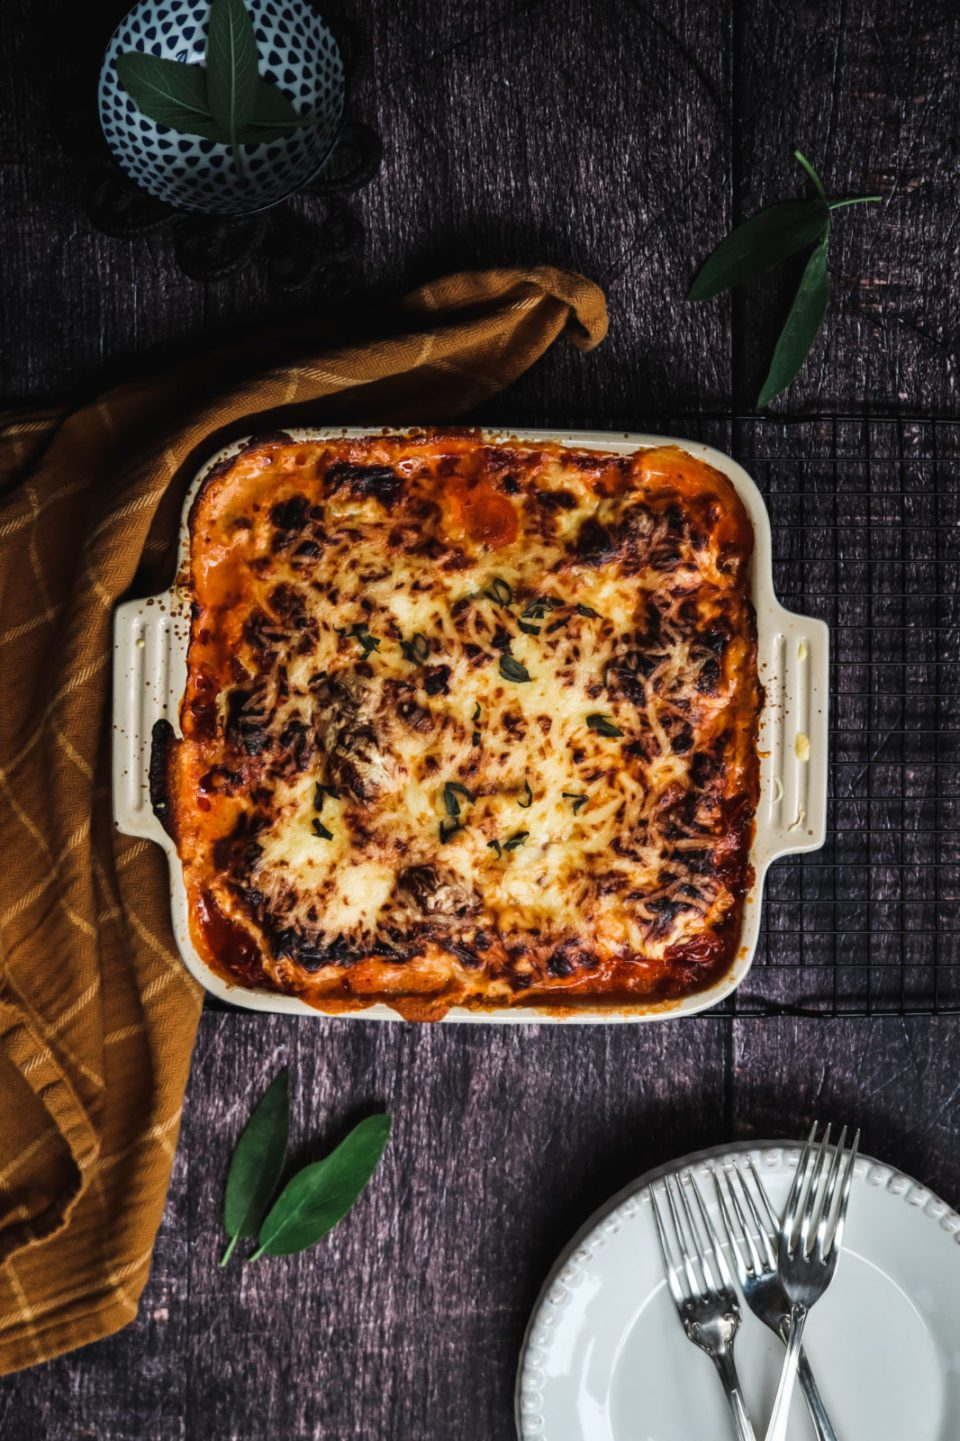 Kohlrabi lasagna casserole with blight brown linen and plates and forks on either side